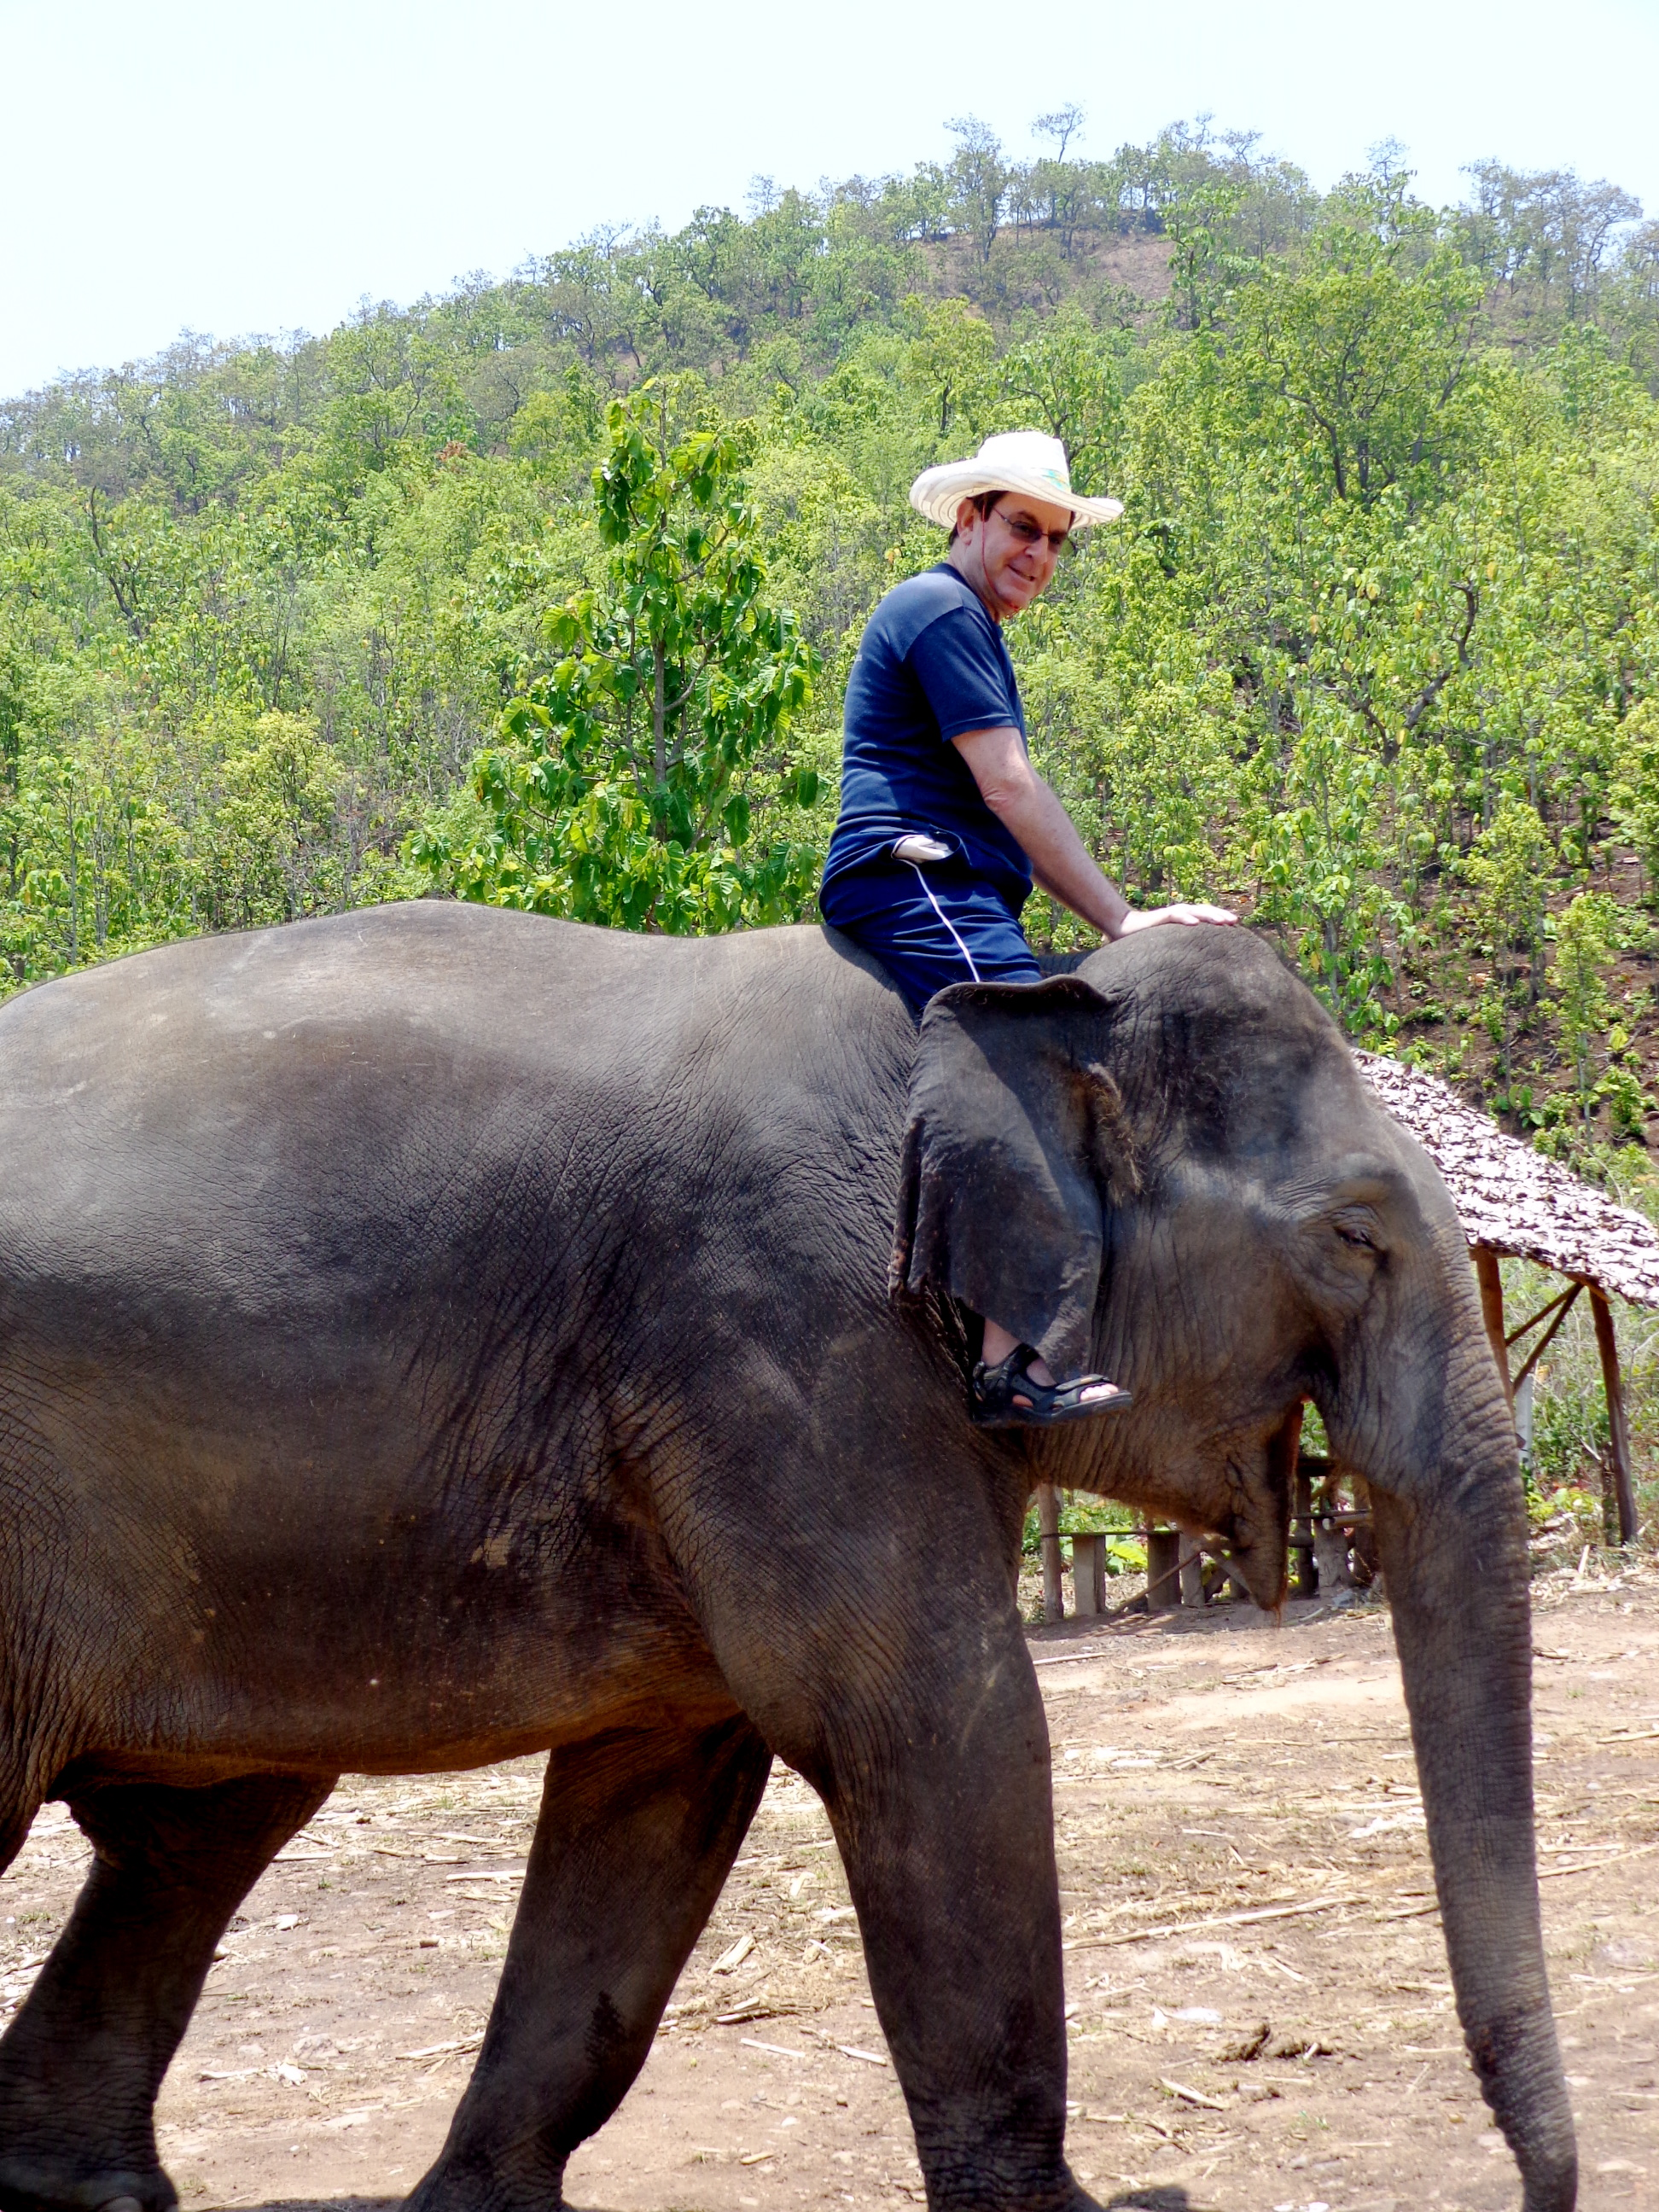 Daveo riding an elephant